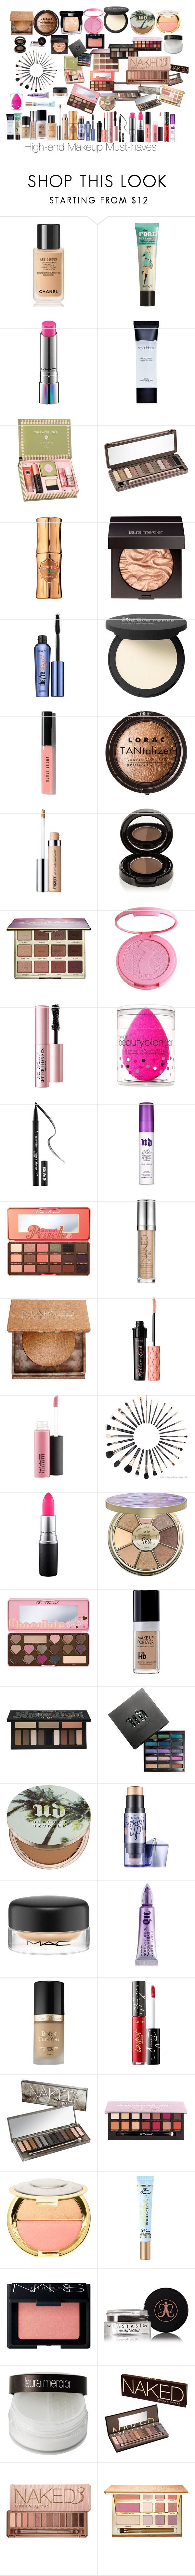 """High End Makeup Must-haves"" by jerzeypeach ❤ liked on Polyvore featuring beauty, Chanel, Benefit, MAC Cosmetics, Smashbox, Urban Decay, Hoola, Laura Mercier, It Cosmetics and Bobbi Brown Cosmetics"